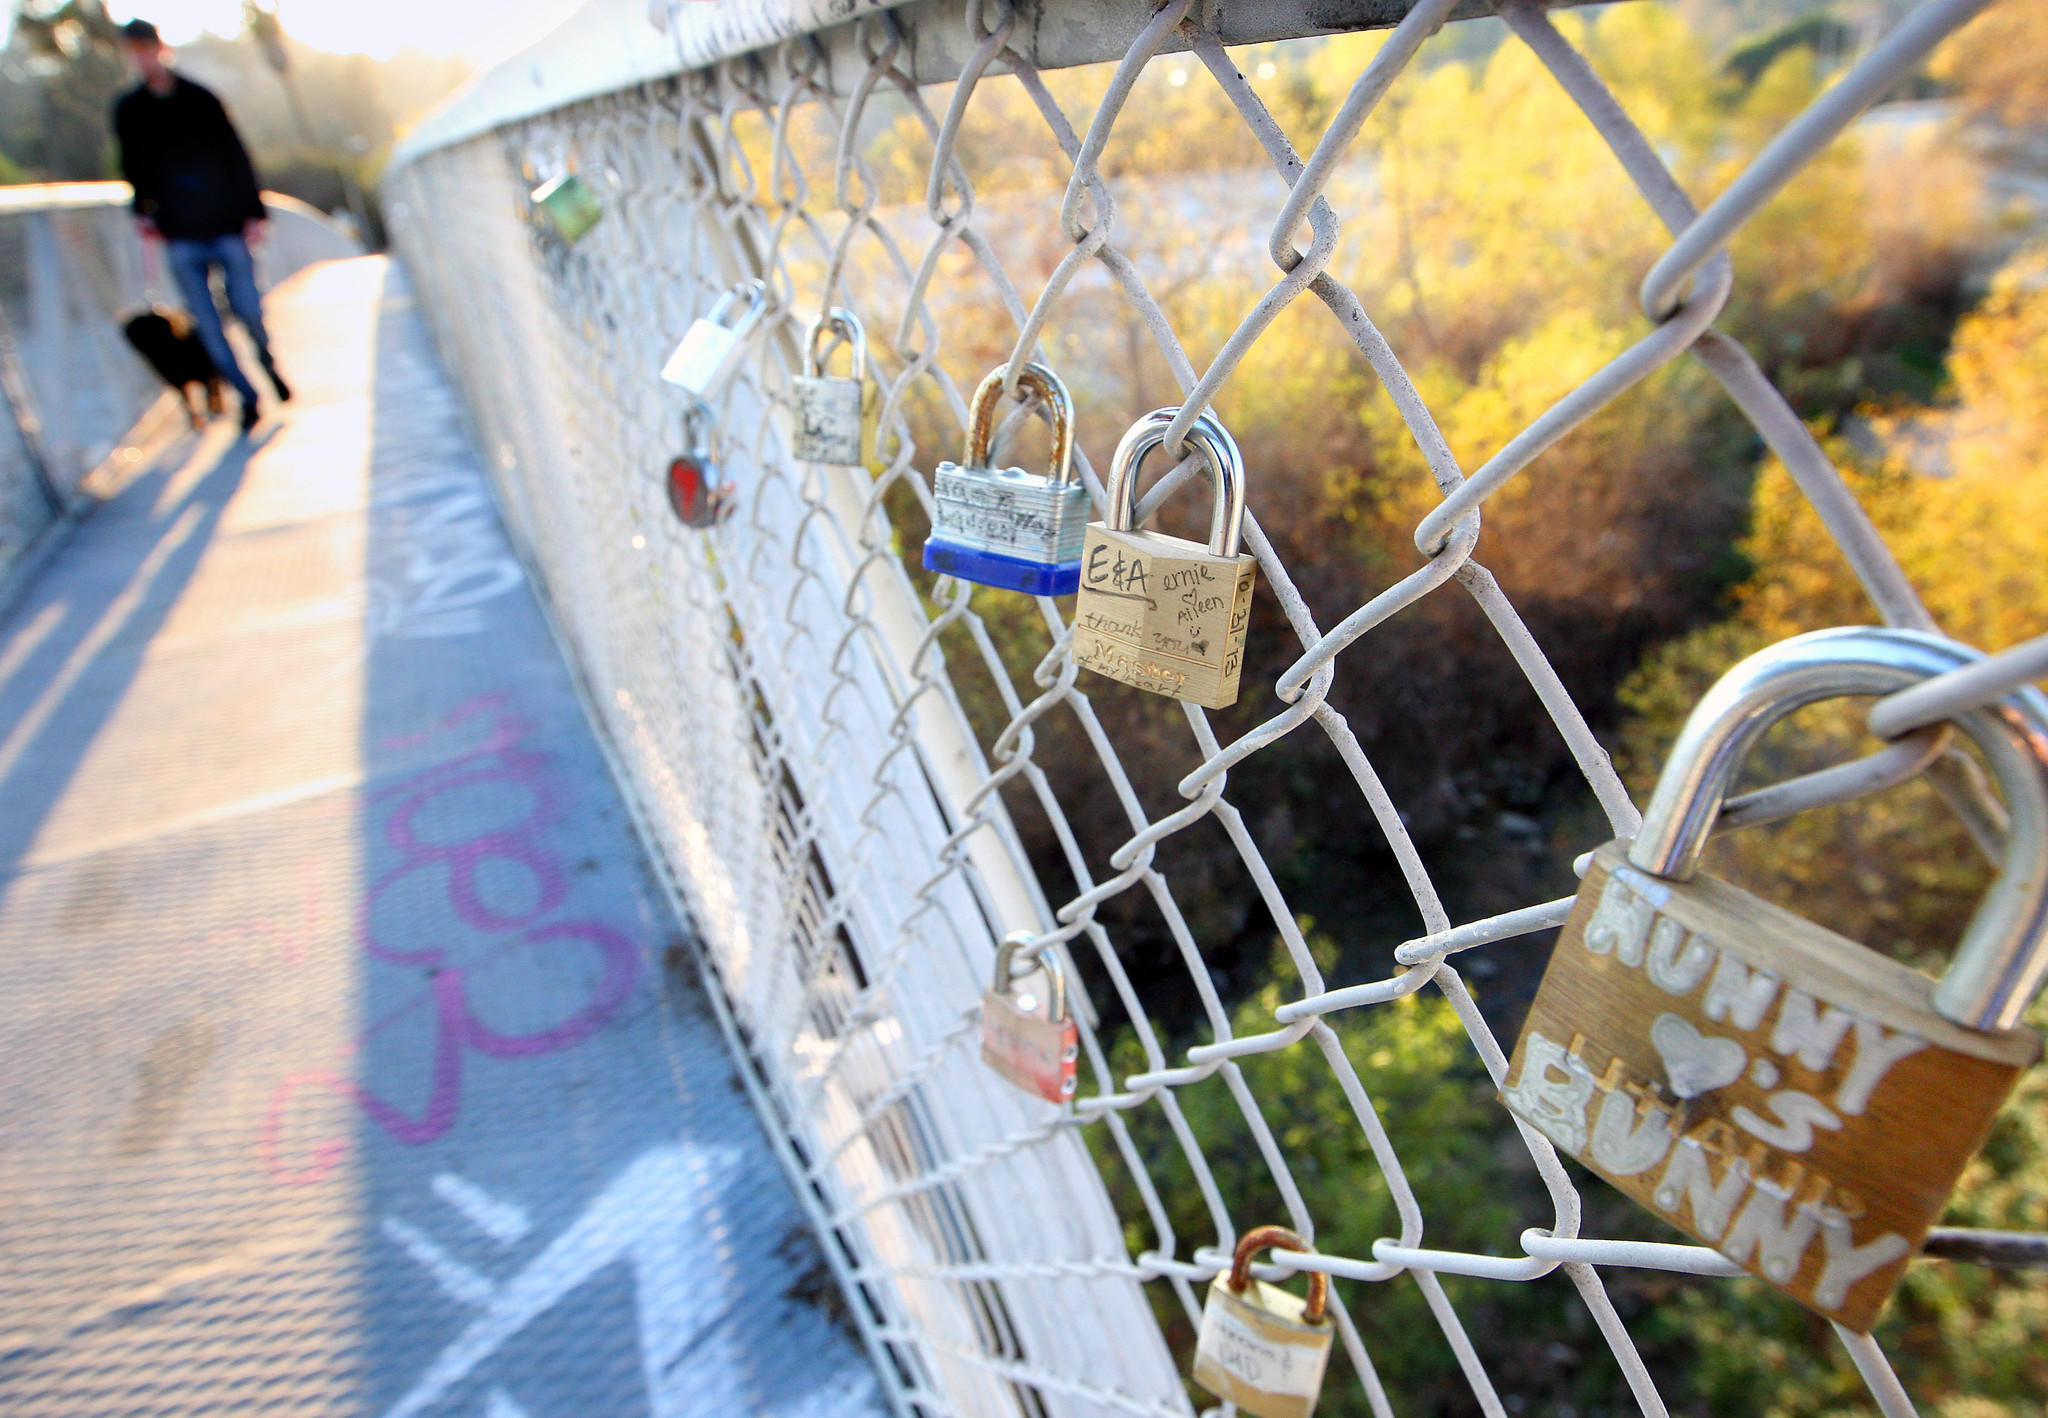 A pedestrian and his dog walk by love locks attached to the Sunnynook Pedestrian bridge in Atwater that follow a world wide romantic tradition.